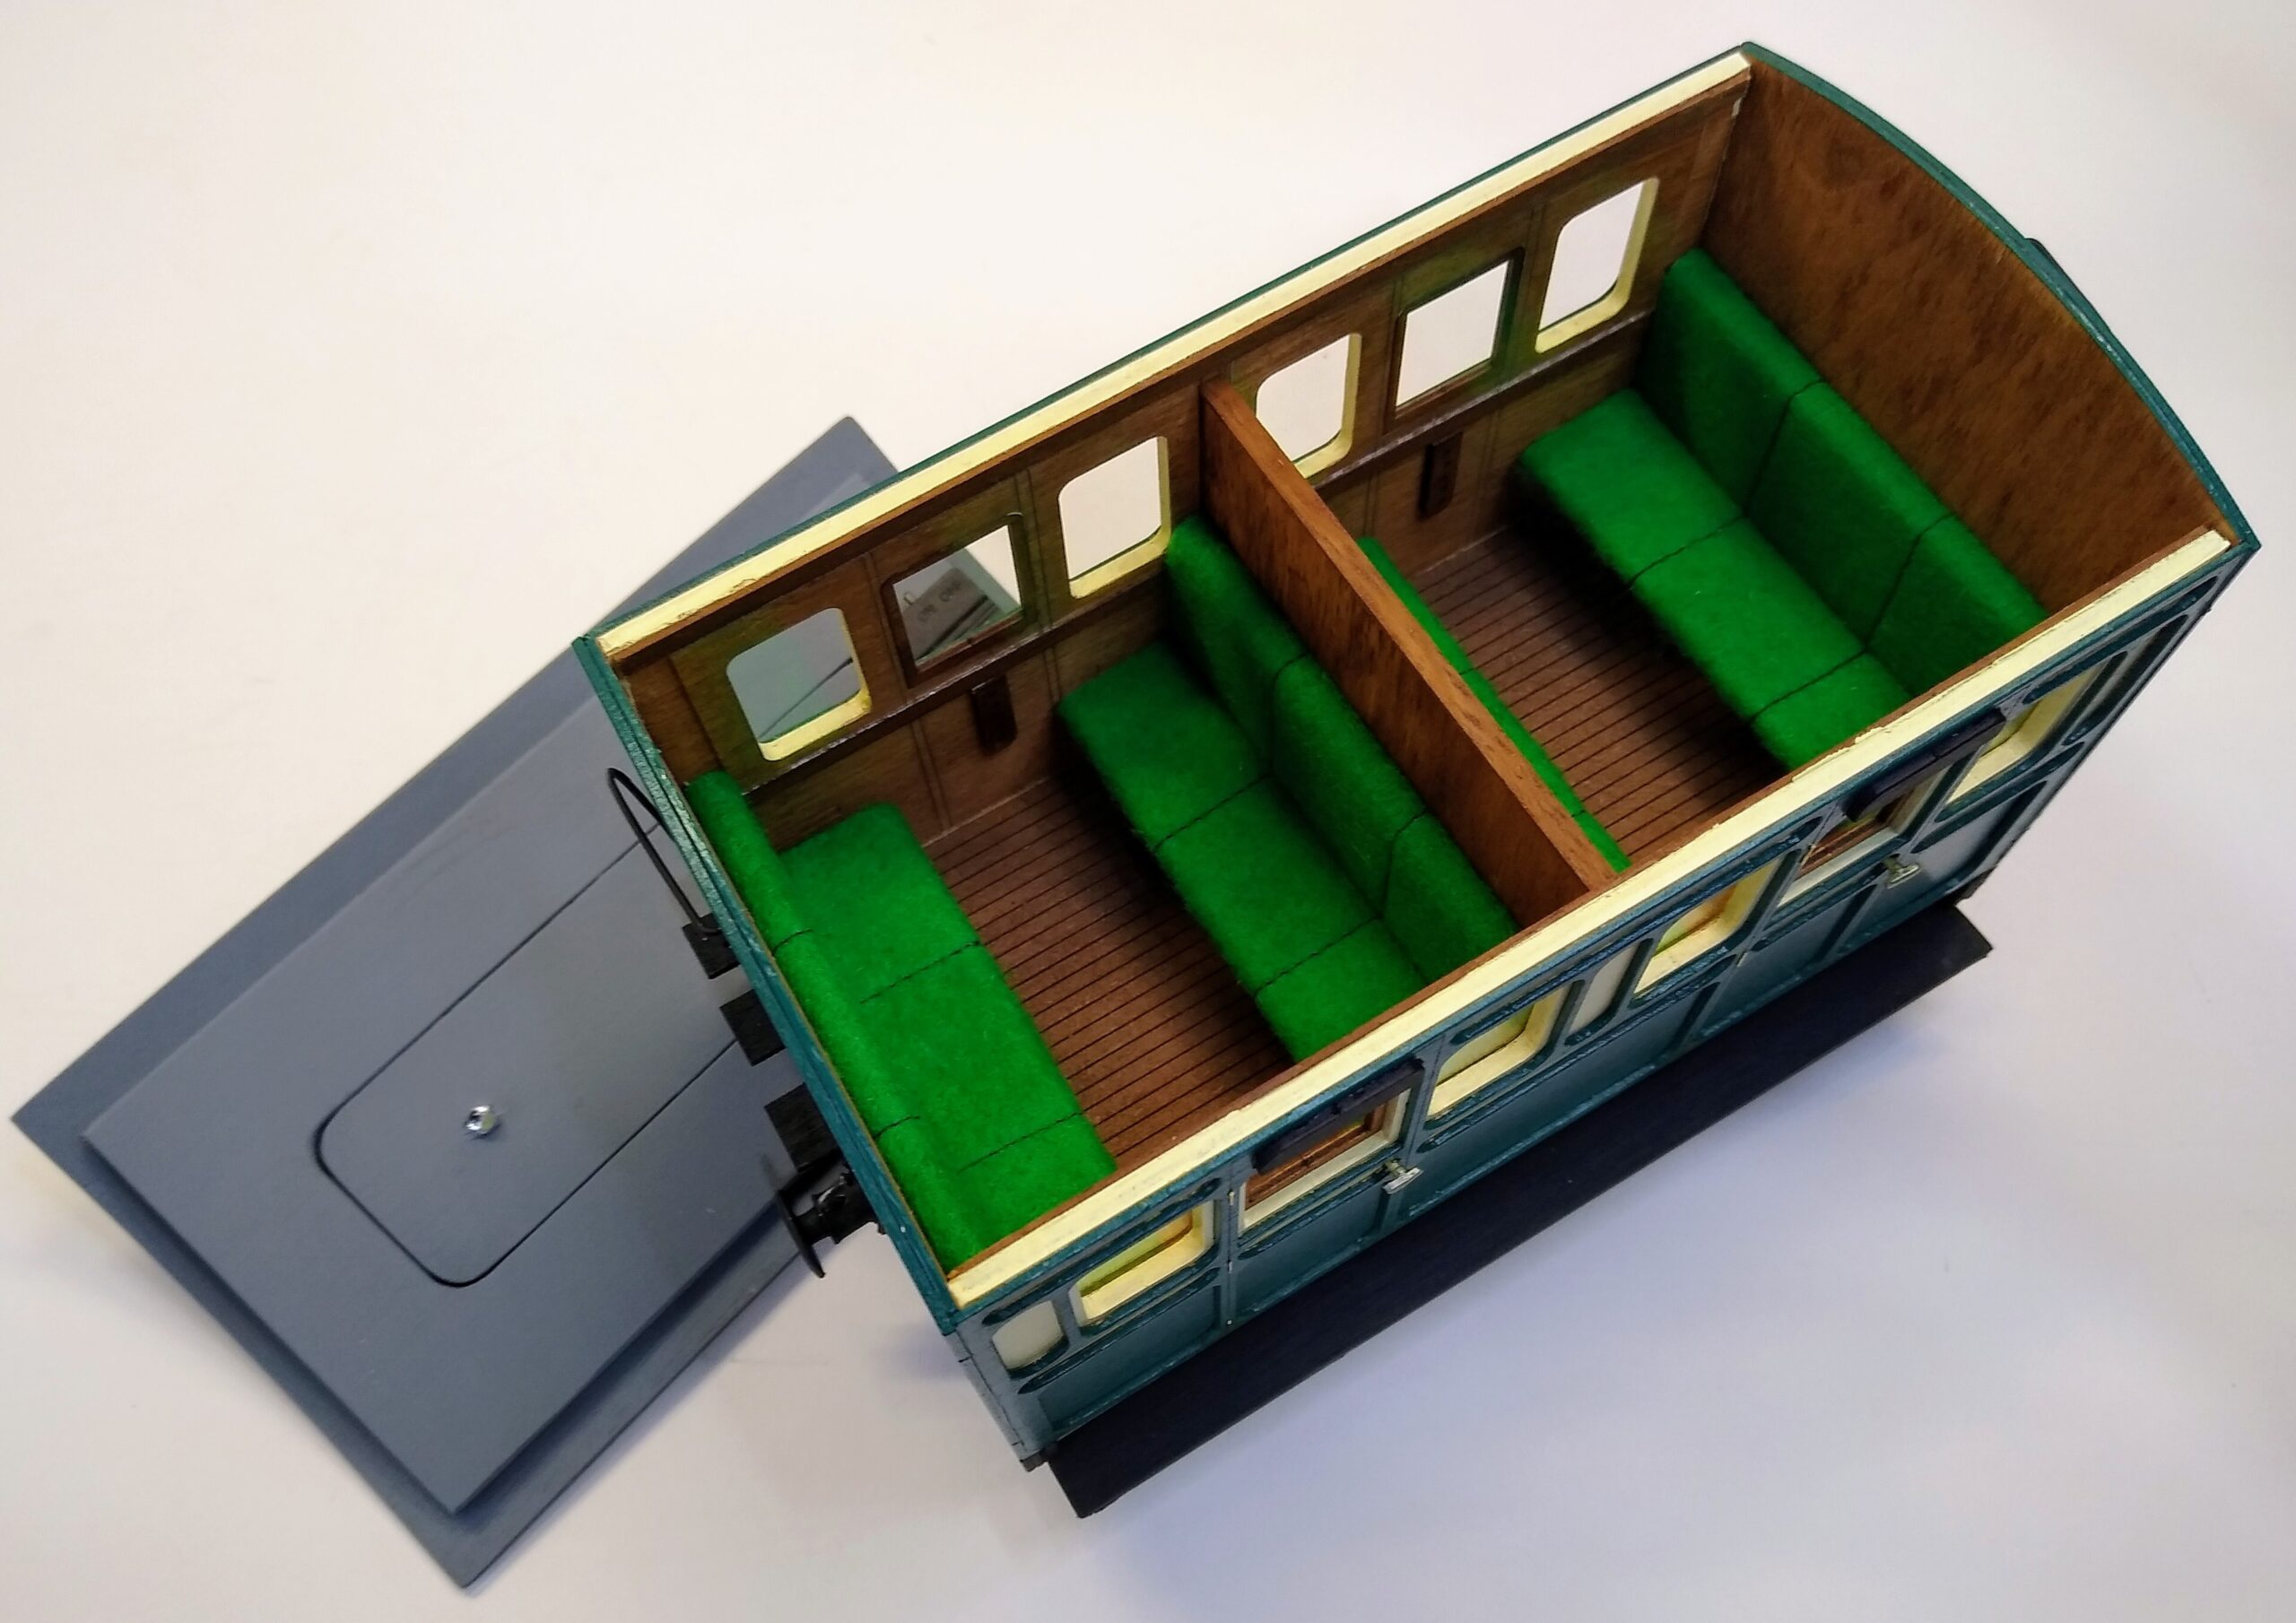 Rolling Stock Classic Freelance Green and Cream 2 compartment interior